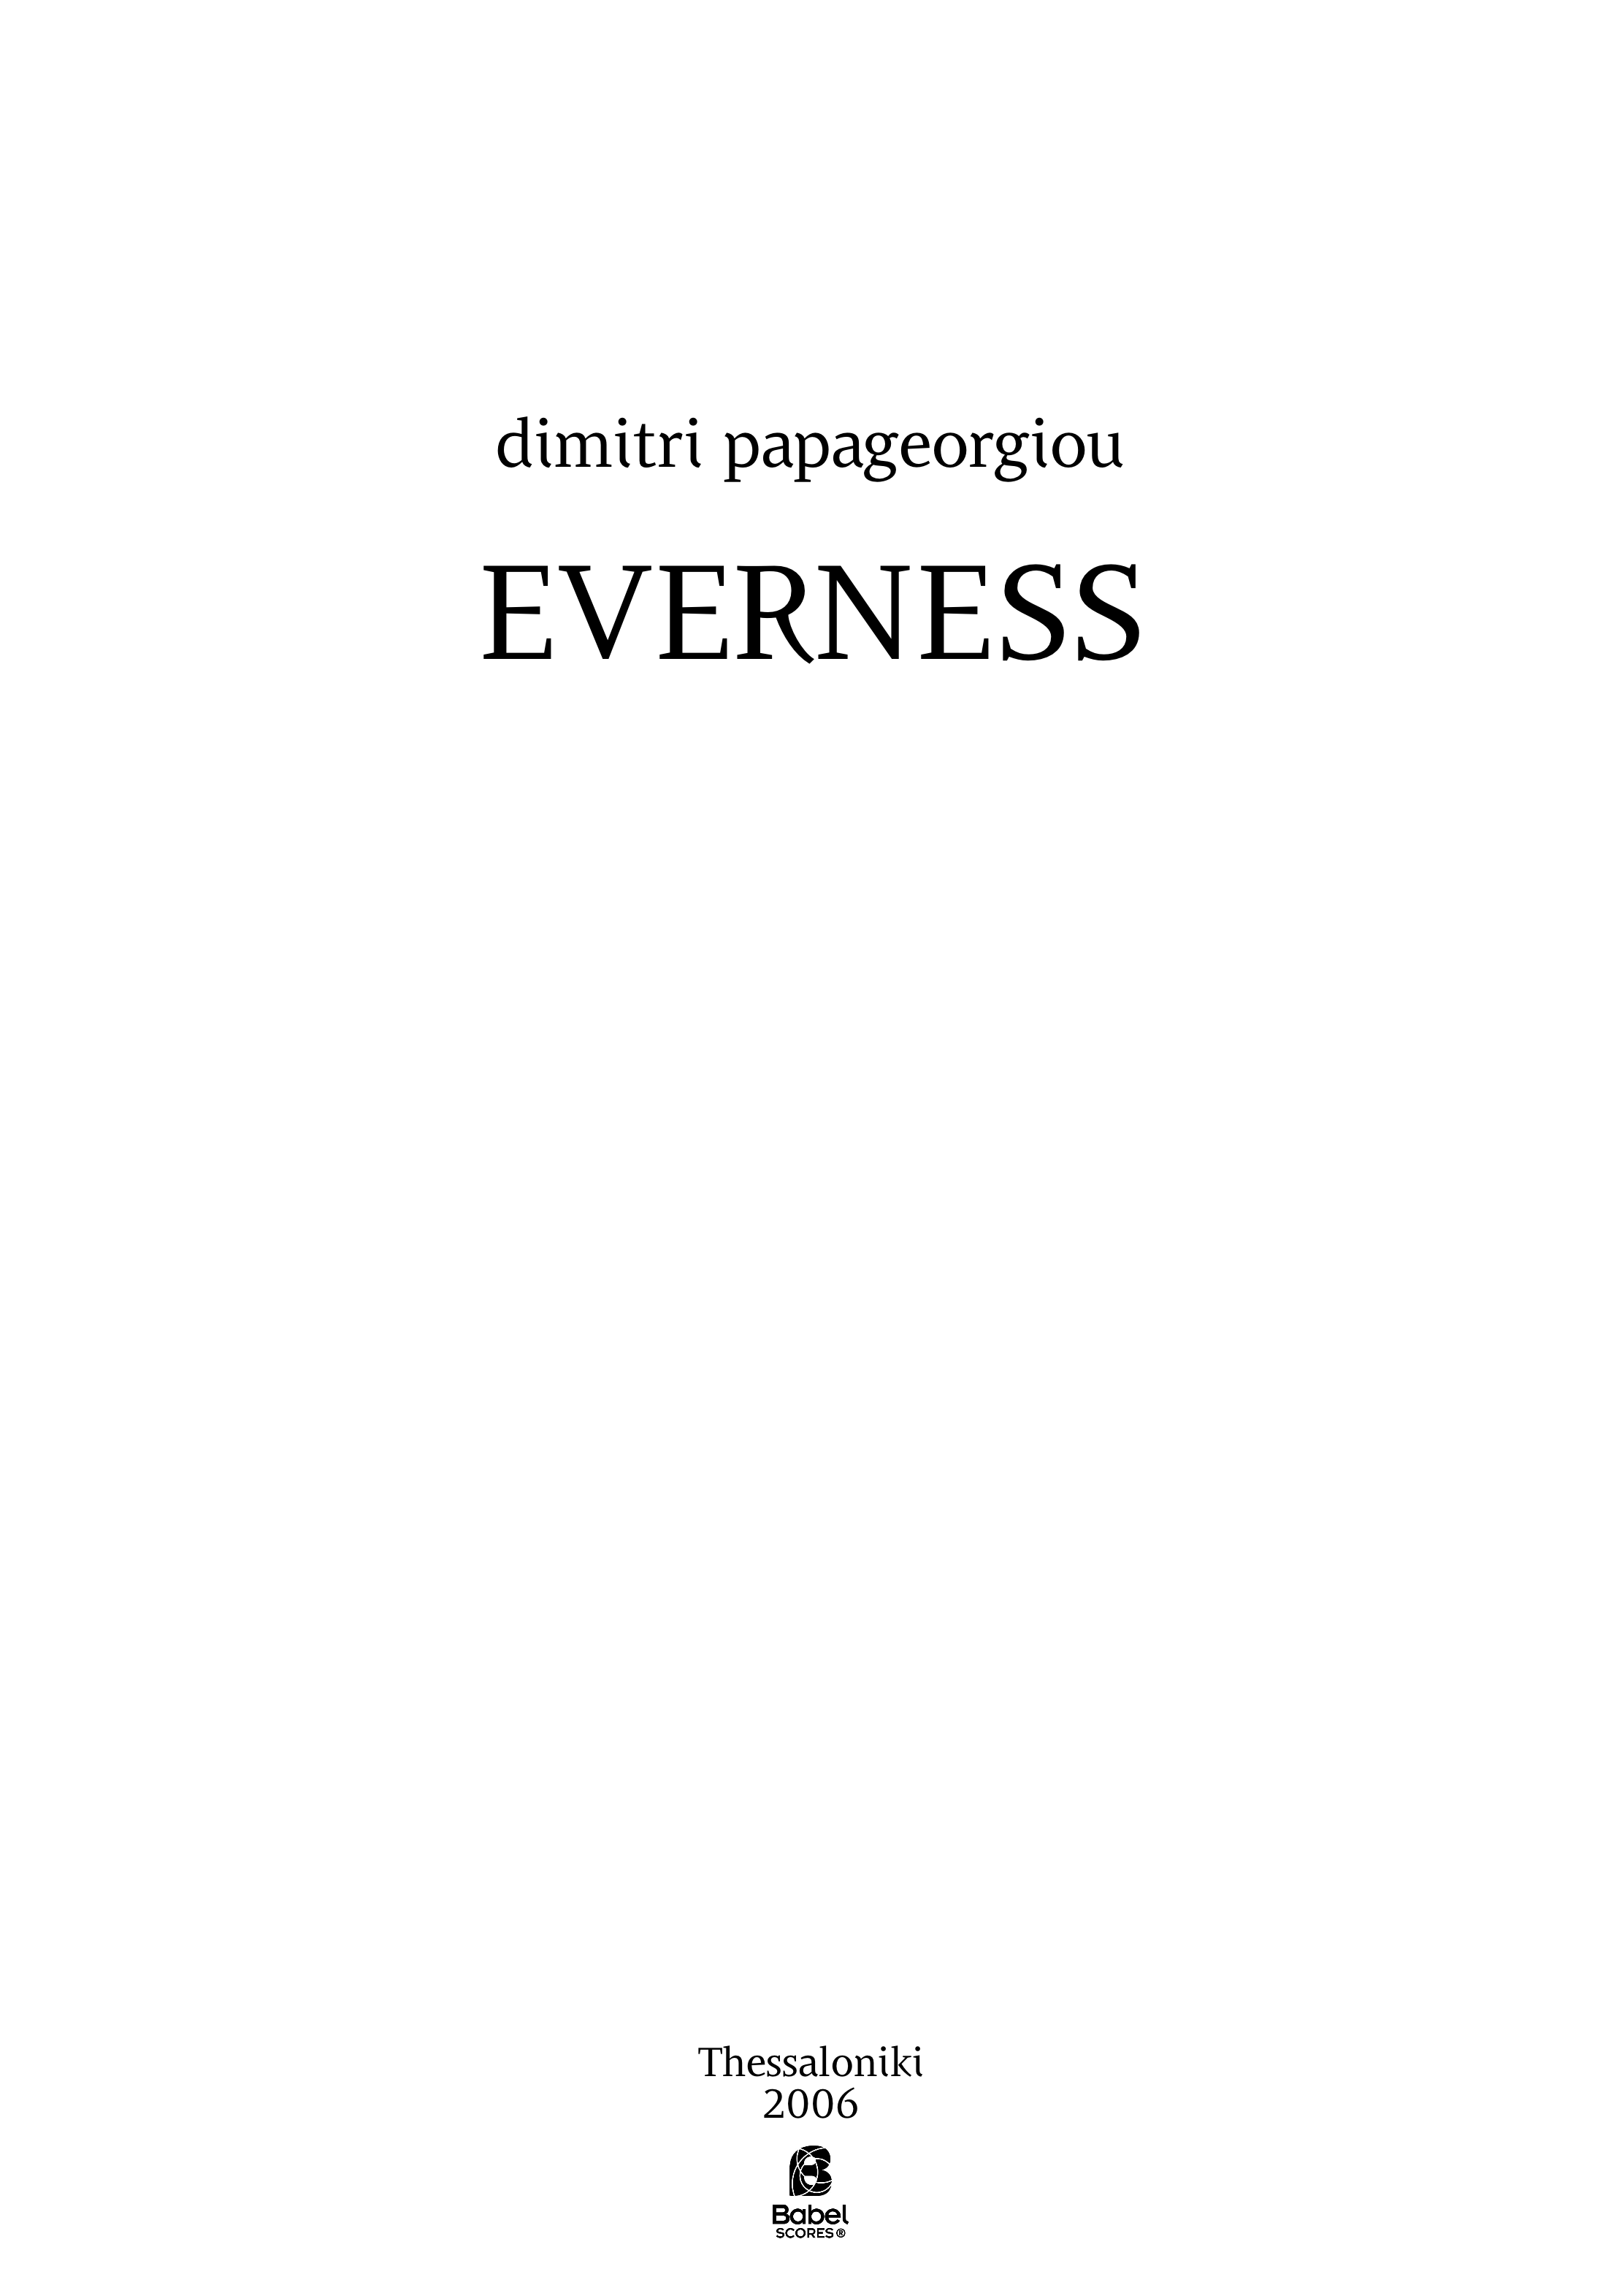 Everness II A3 z 2 68 189